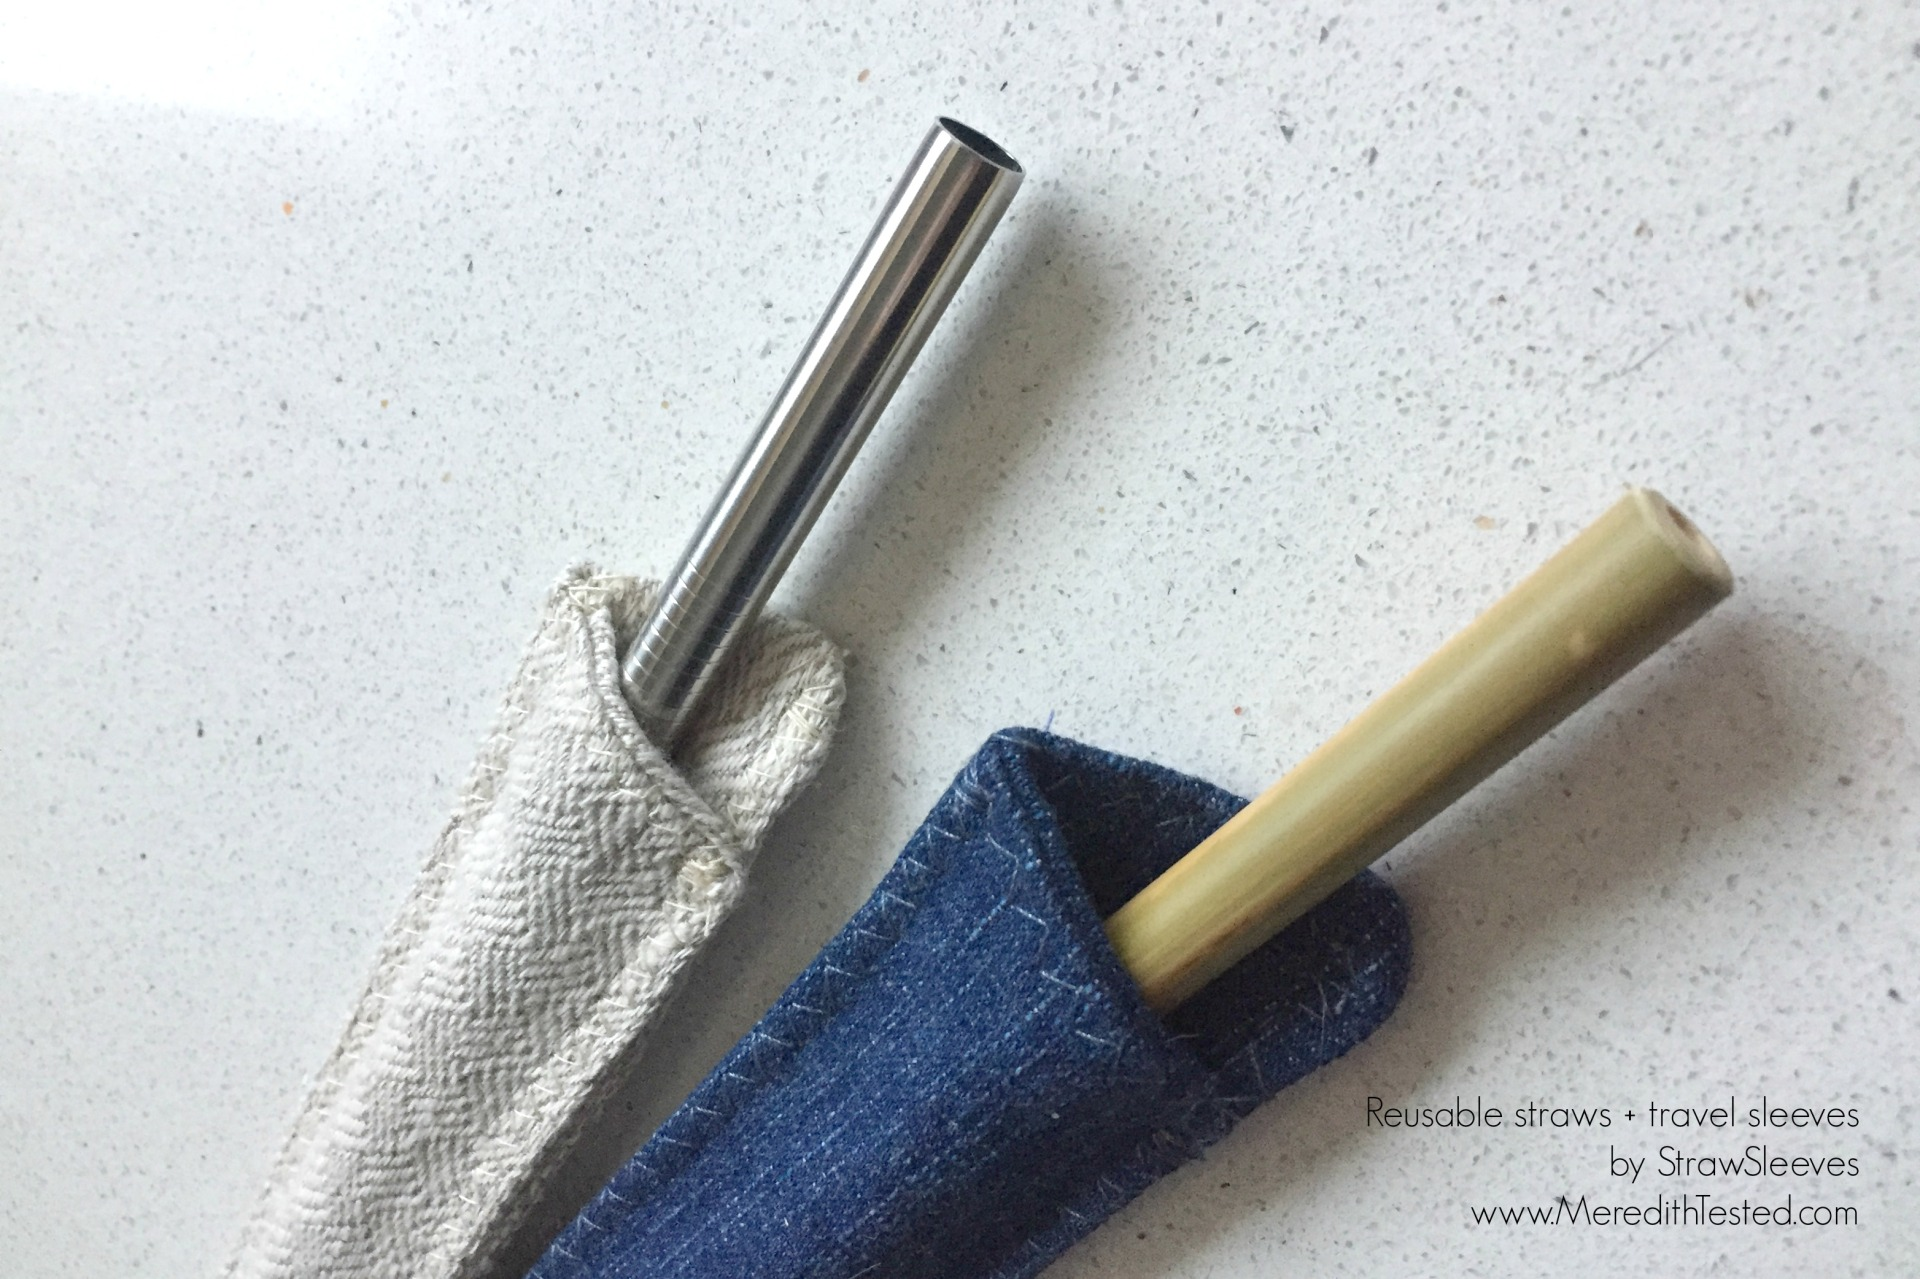 Bring your own reusable straw and protective case by StrawSleeves